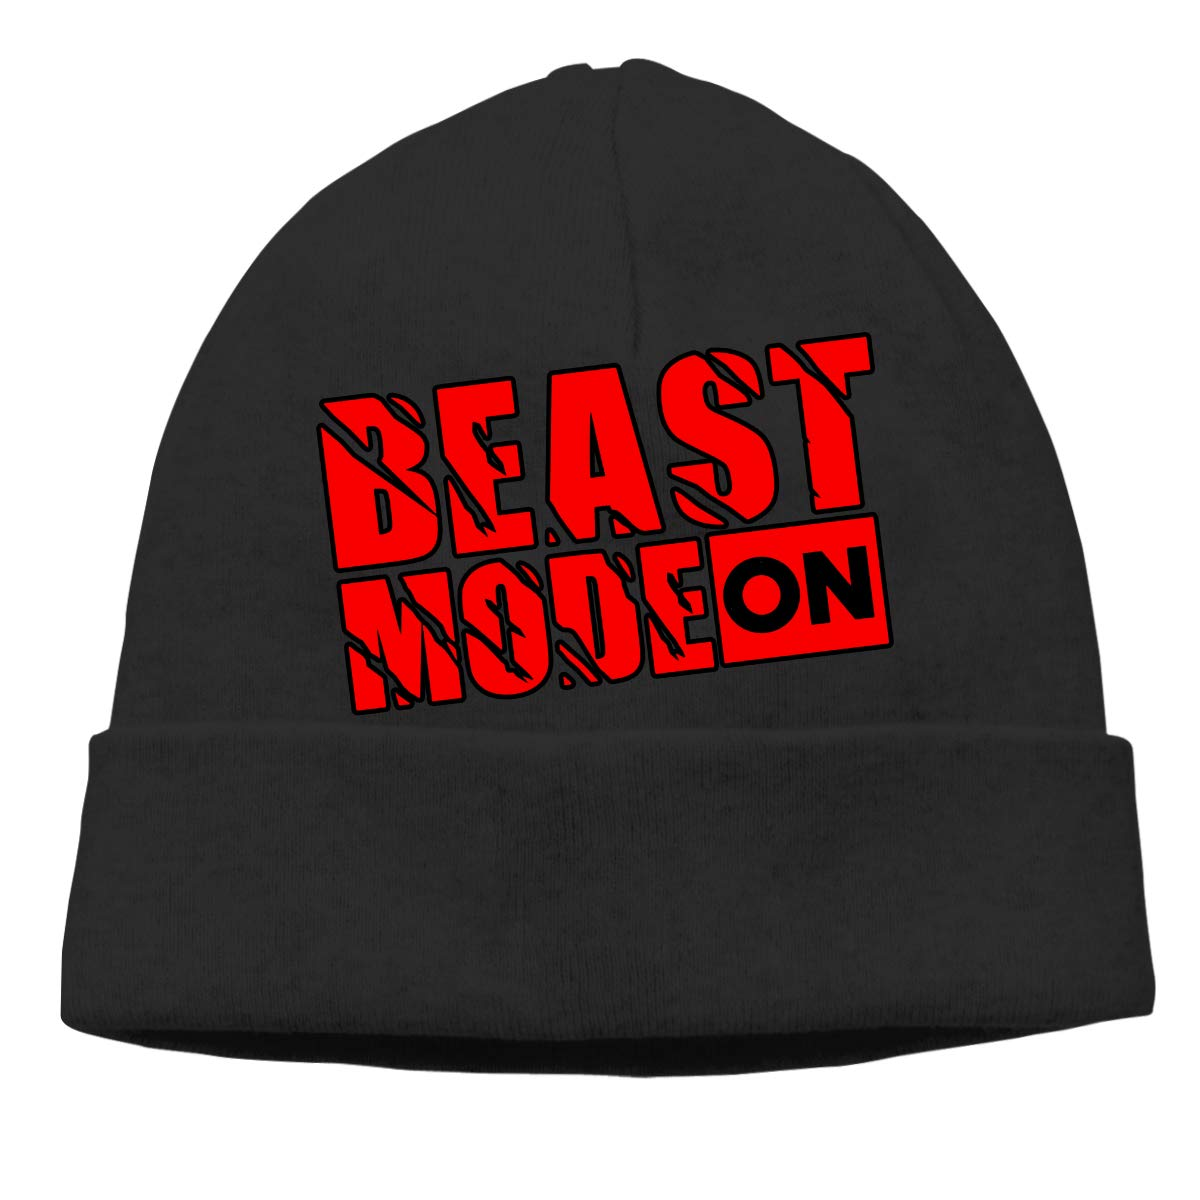 200147cc9d7 Beast Mode On Beanie Hat Classic Toboggan Hat Winter Hats Warm Hat Beanies  for Men and Women Black at Amazon Men s Clothing store